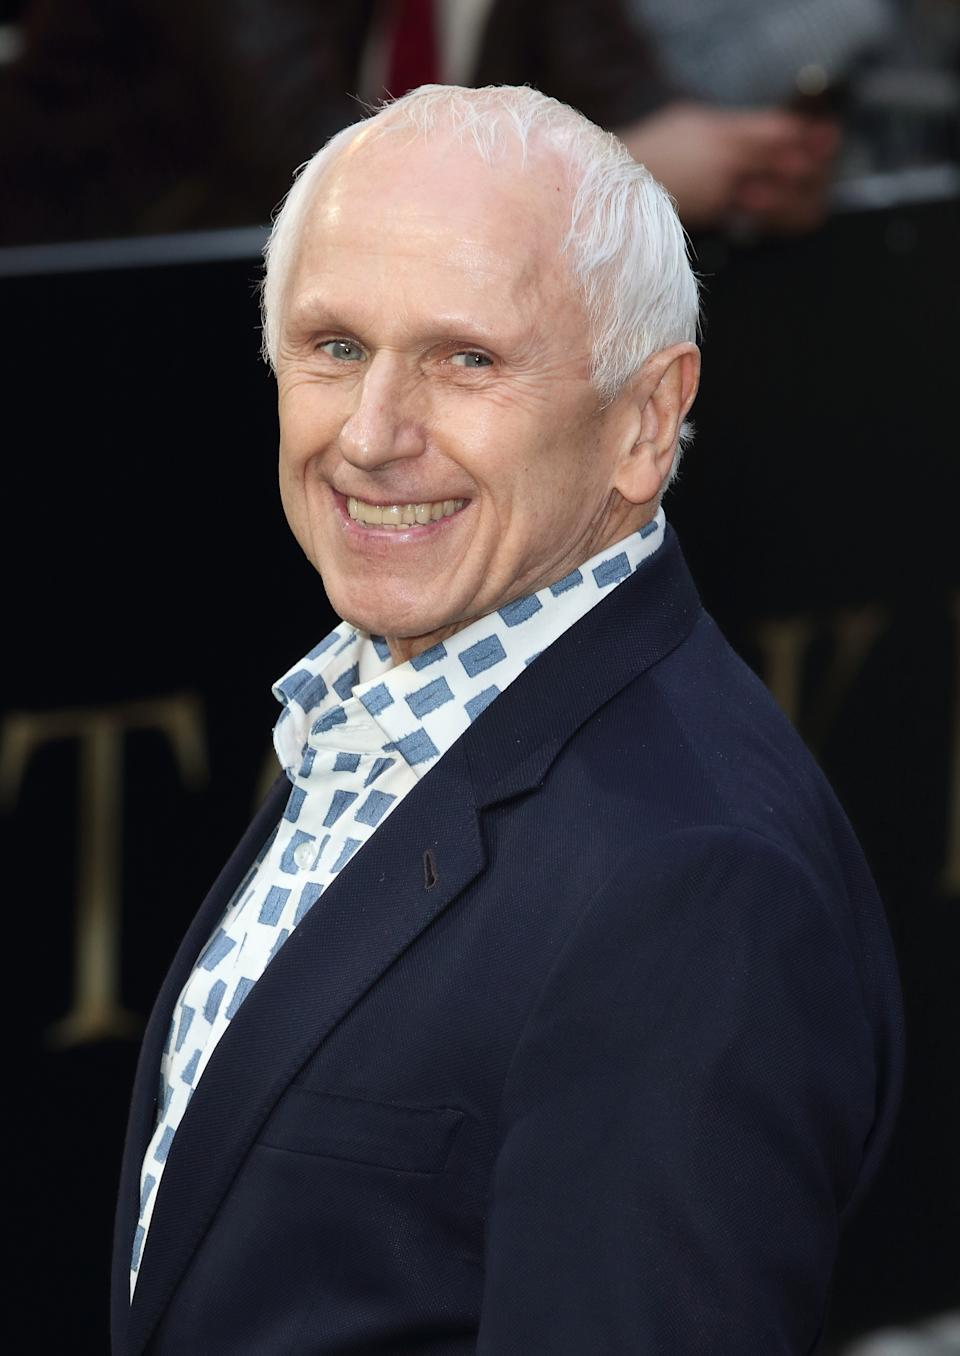 LONDON, UNITED KINGDOM - 2019/04/29: Wayne Sleep on the red carpet at the Tolkien UK Premiere at the Curzon Mayfair. (Photo by Keith Mayhew/SOPA Images/LightRocket via Getty Images)